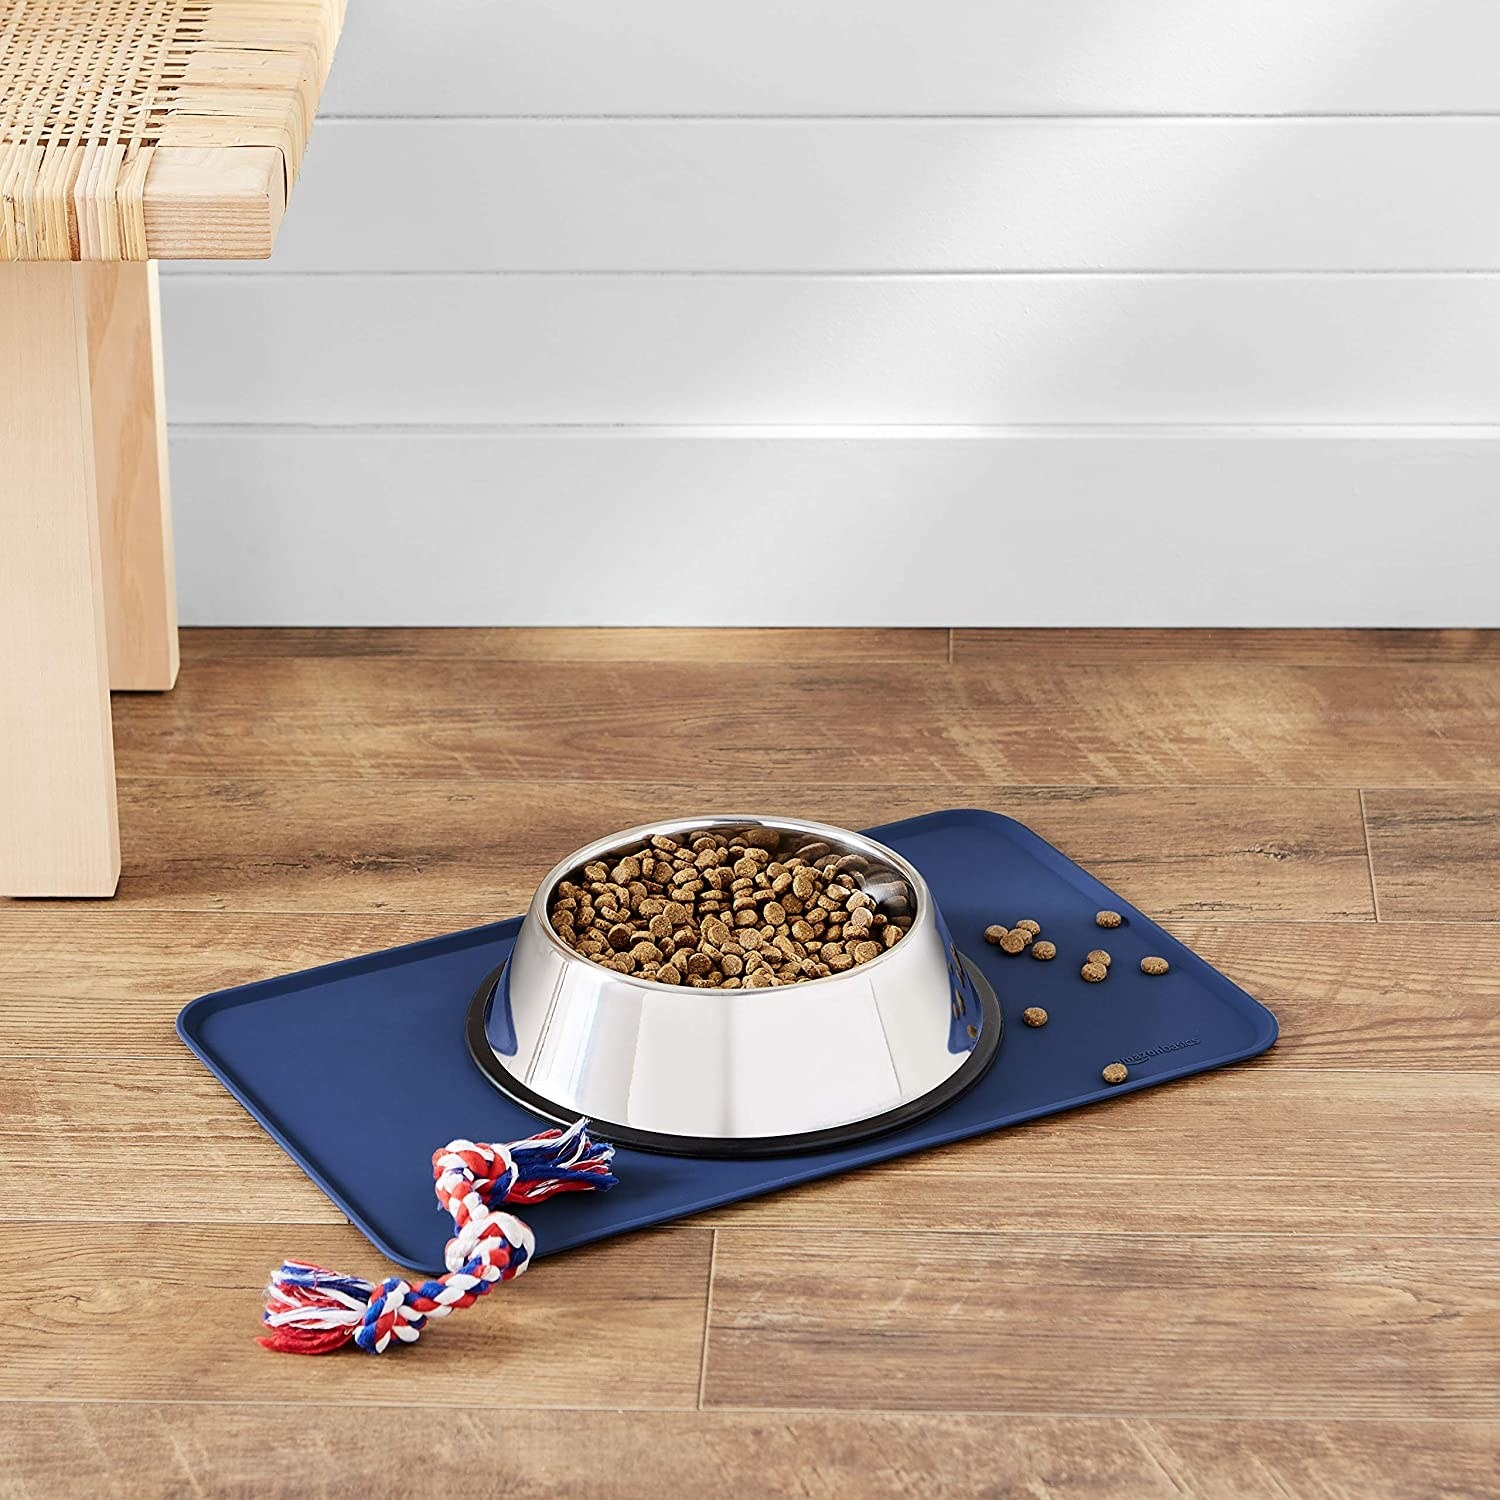 A dog bowl with food kept on a silicone mat.